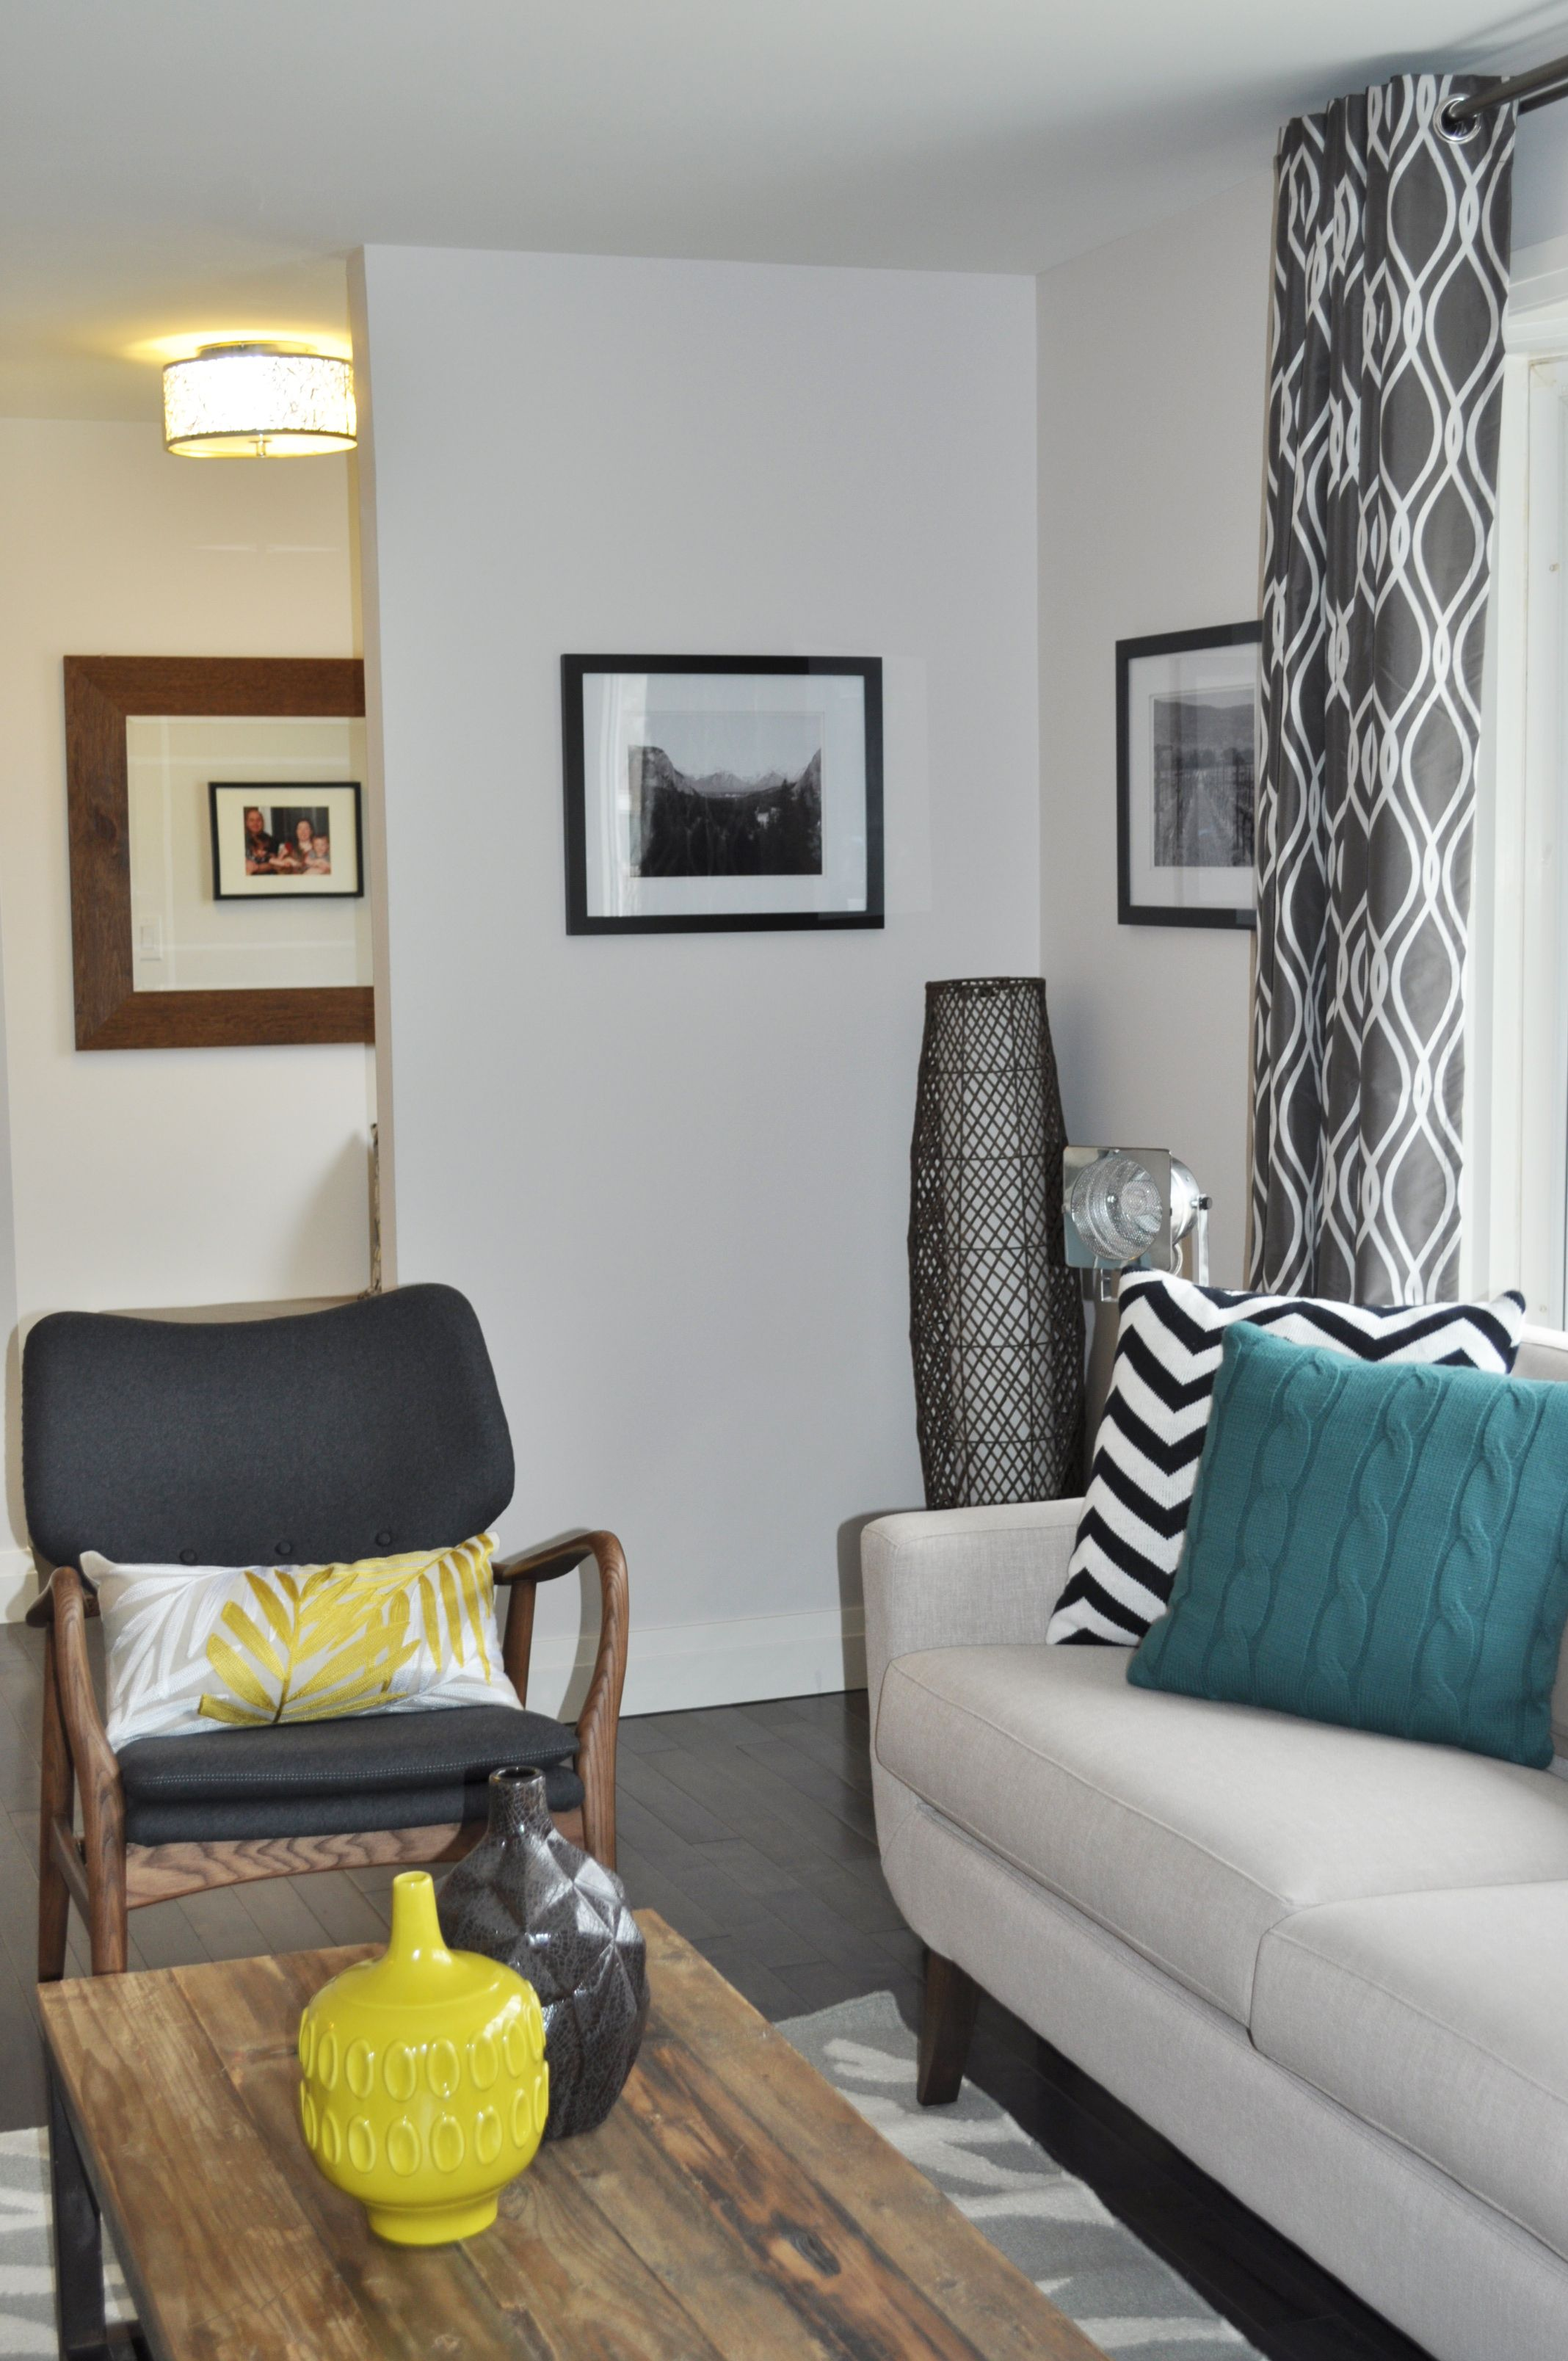 Newly Renovated Open Concept Living Room. Modern Look And Feel. Teal/